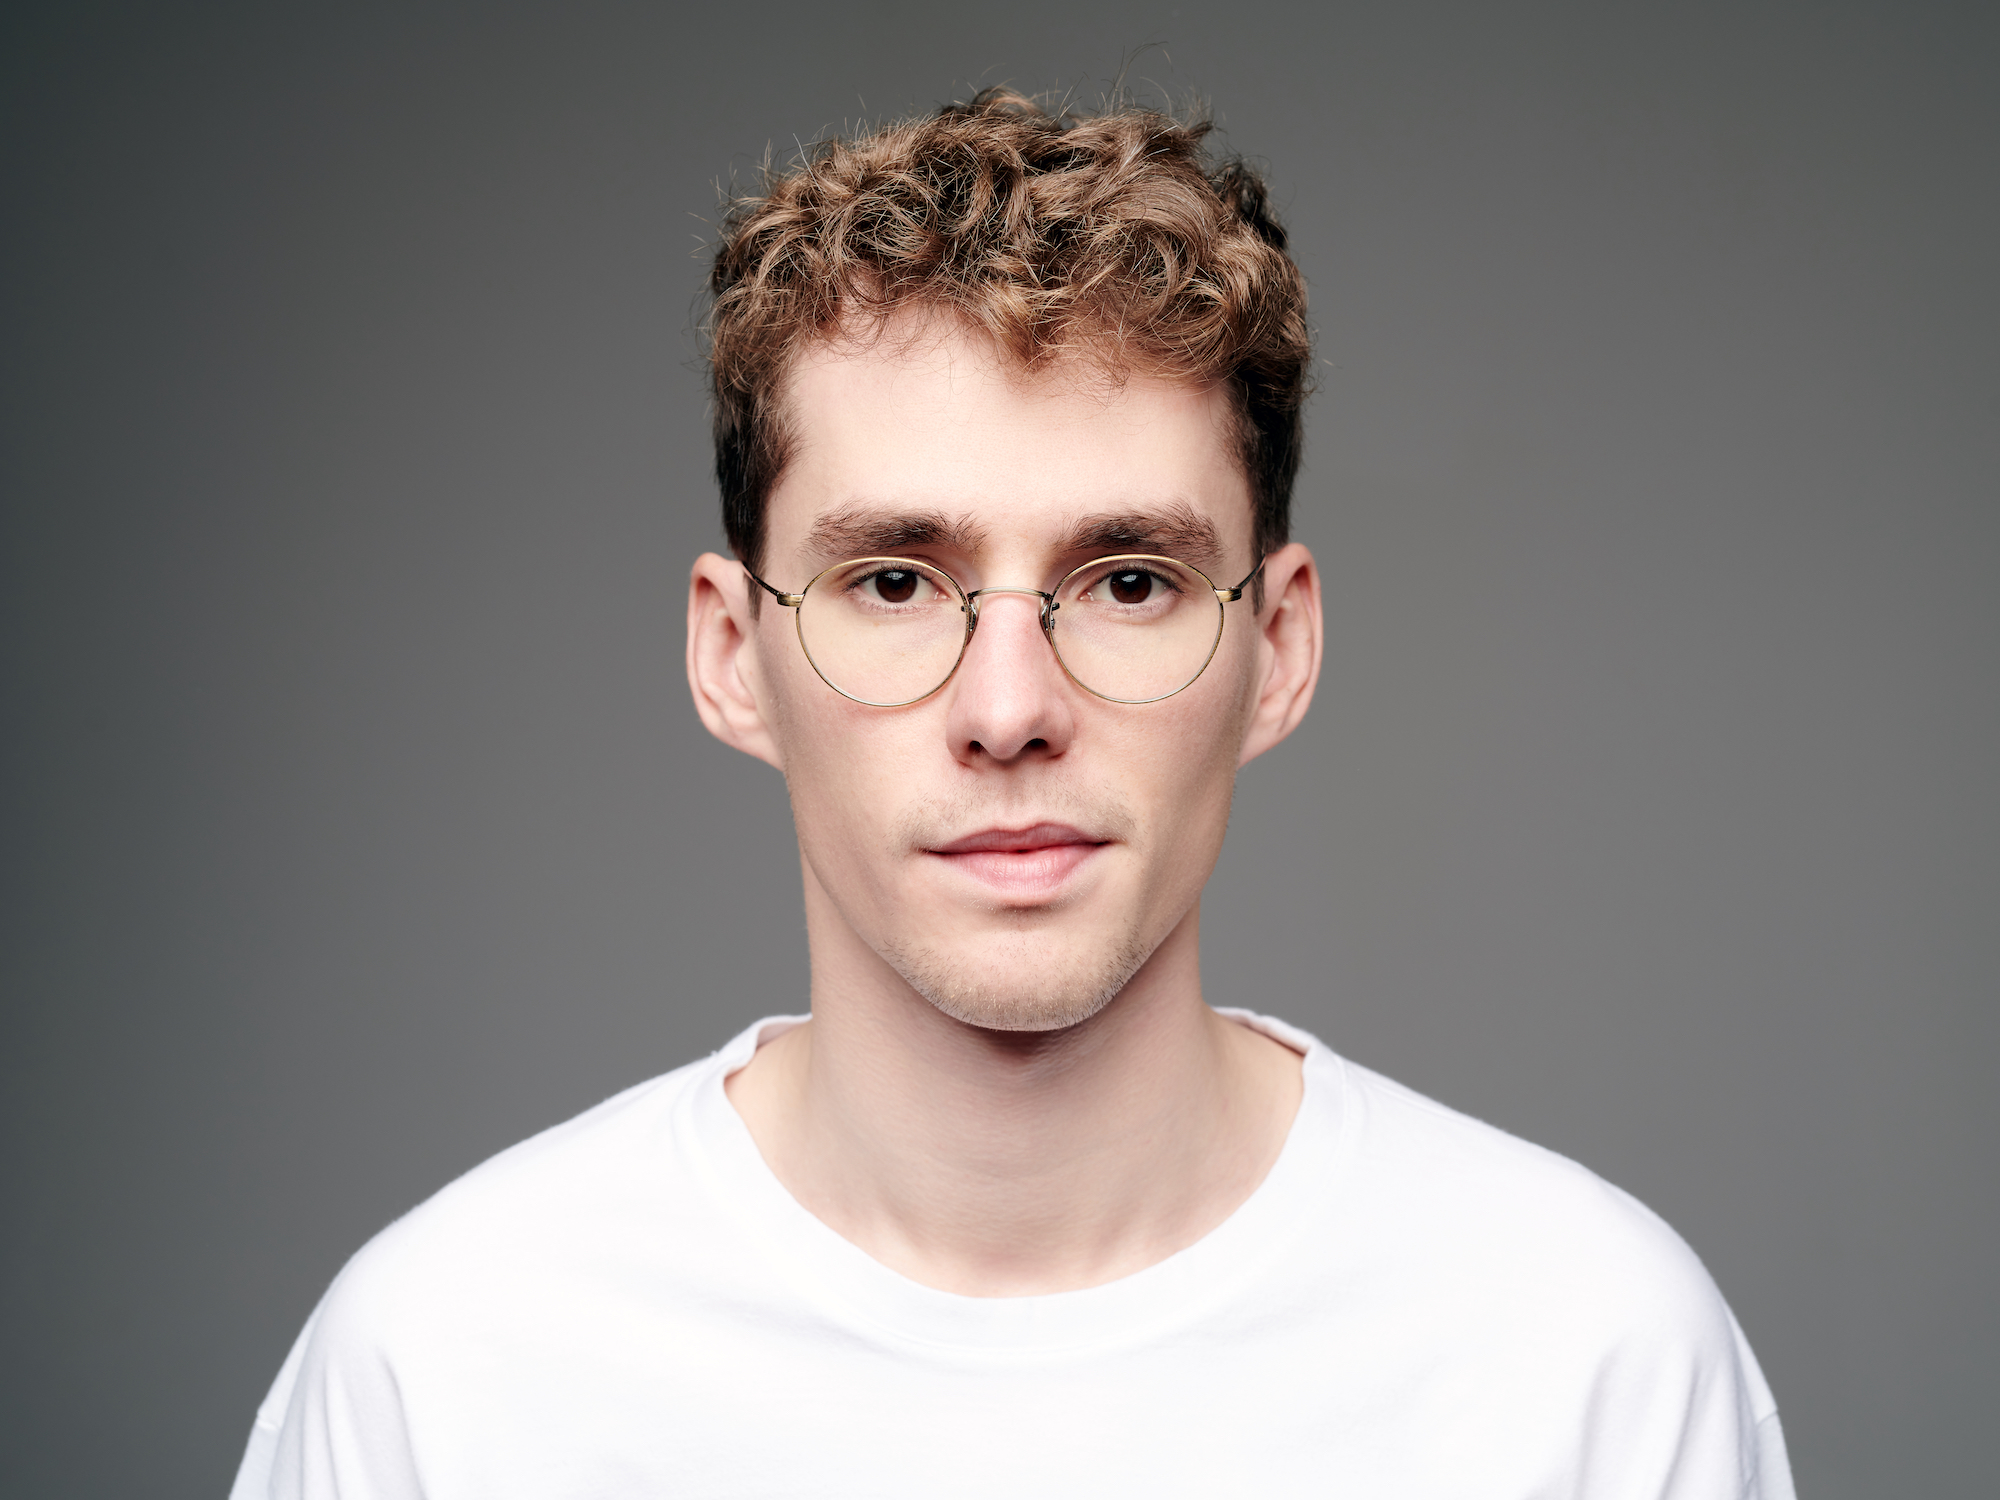 Belgian DJ Lost Frequencies